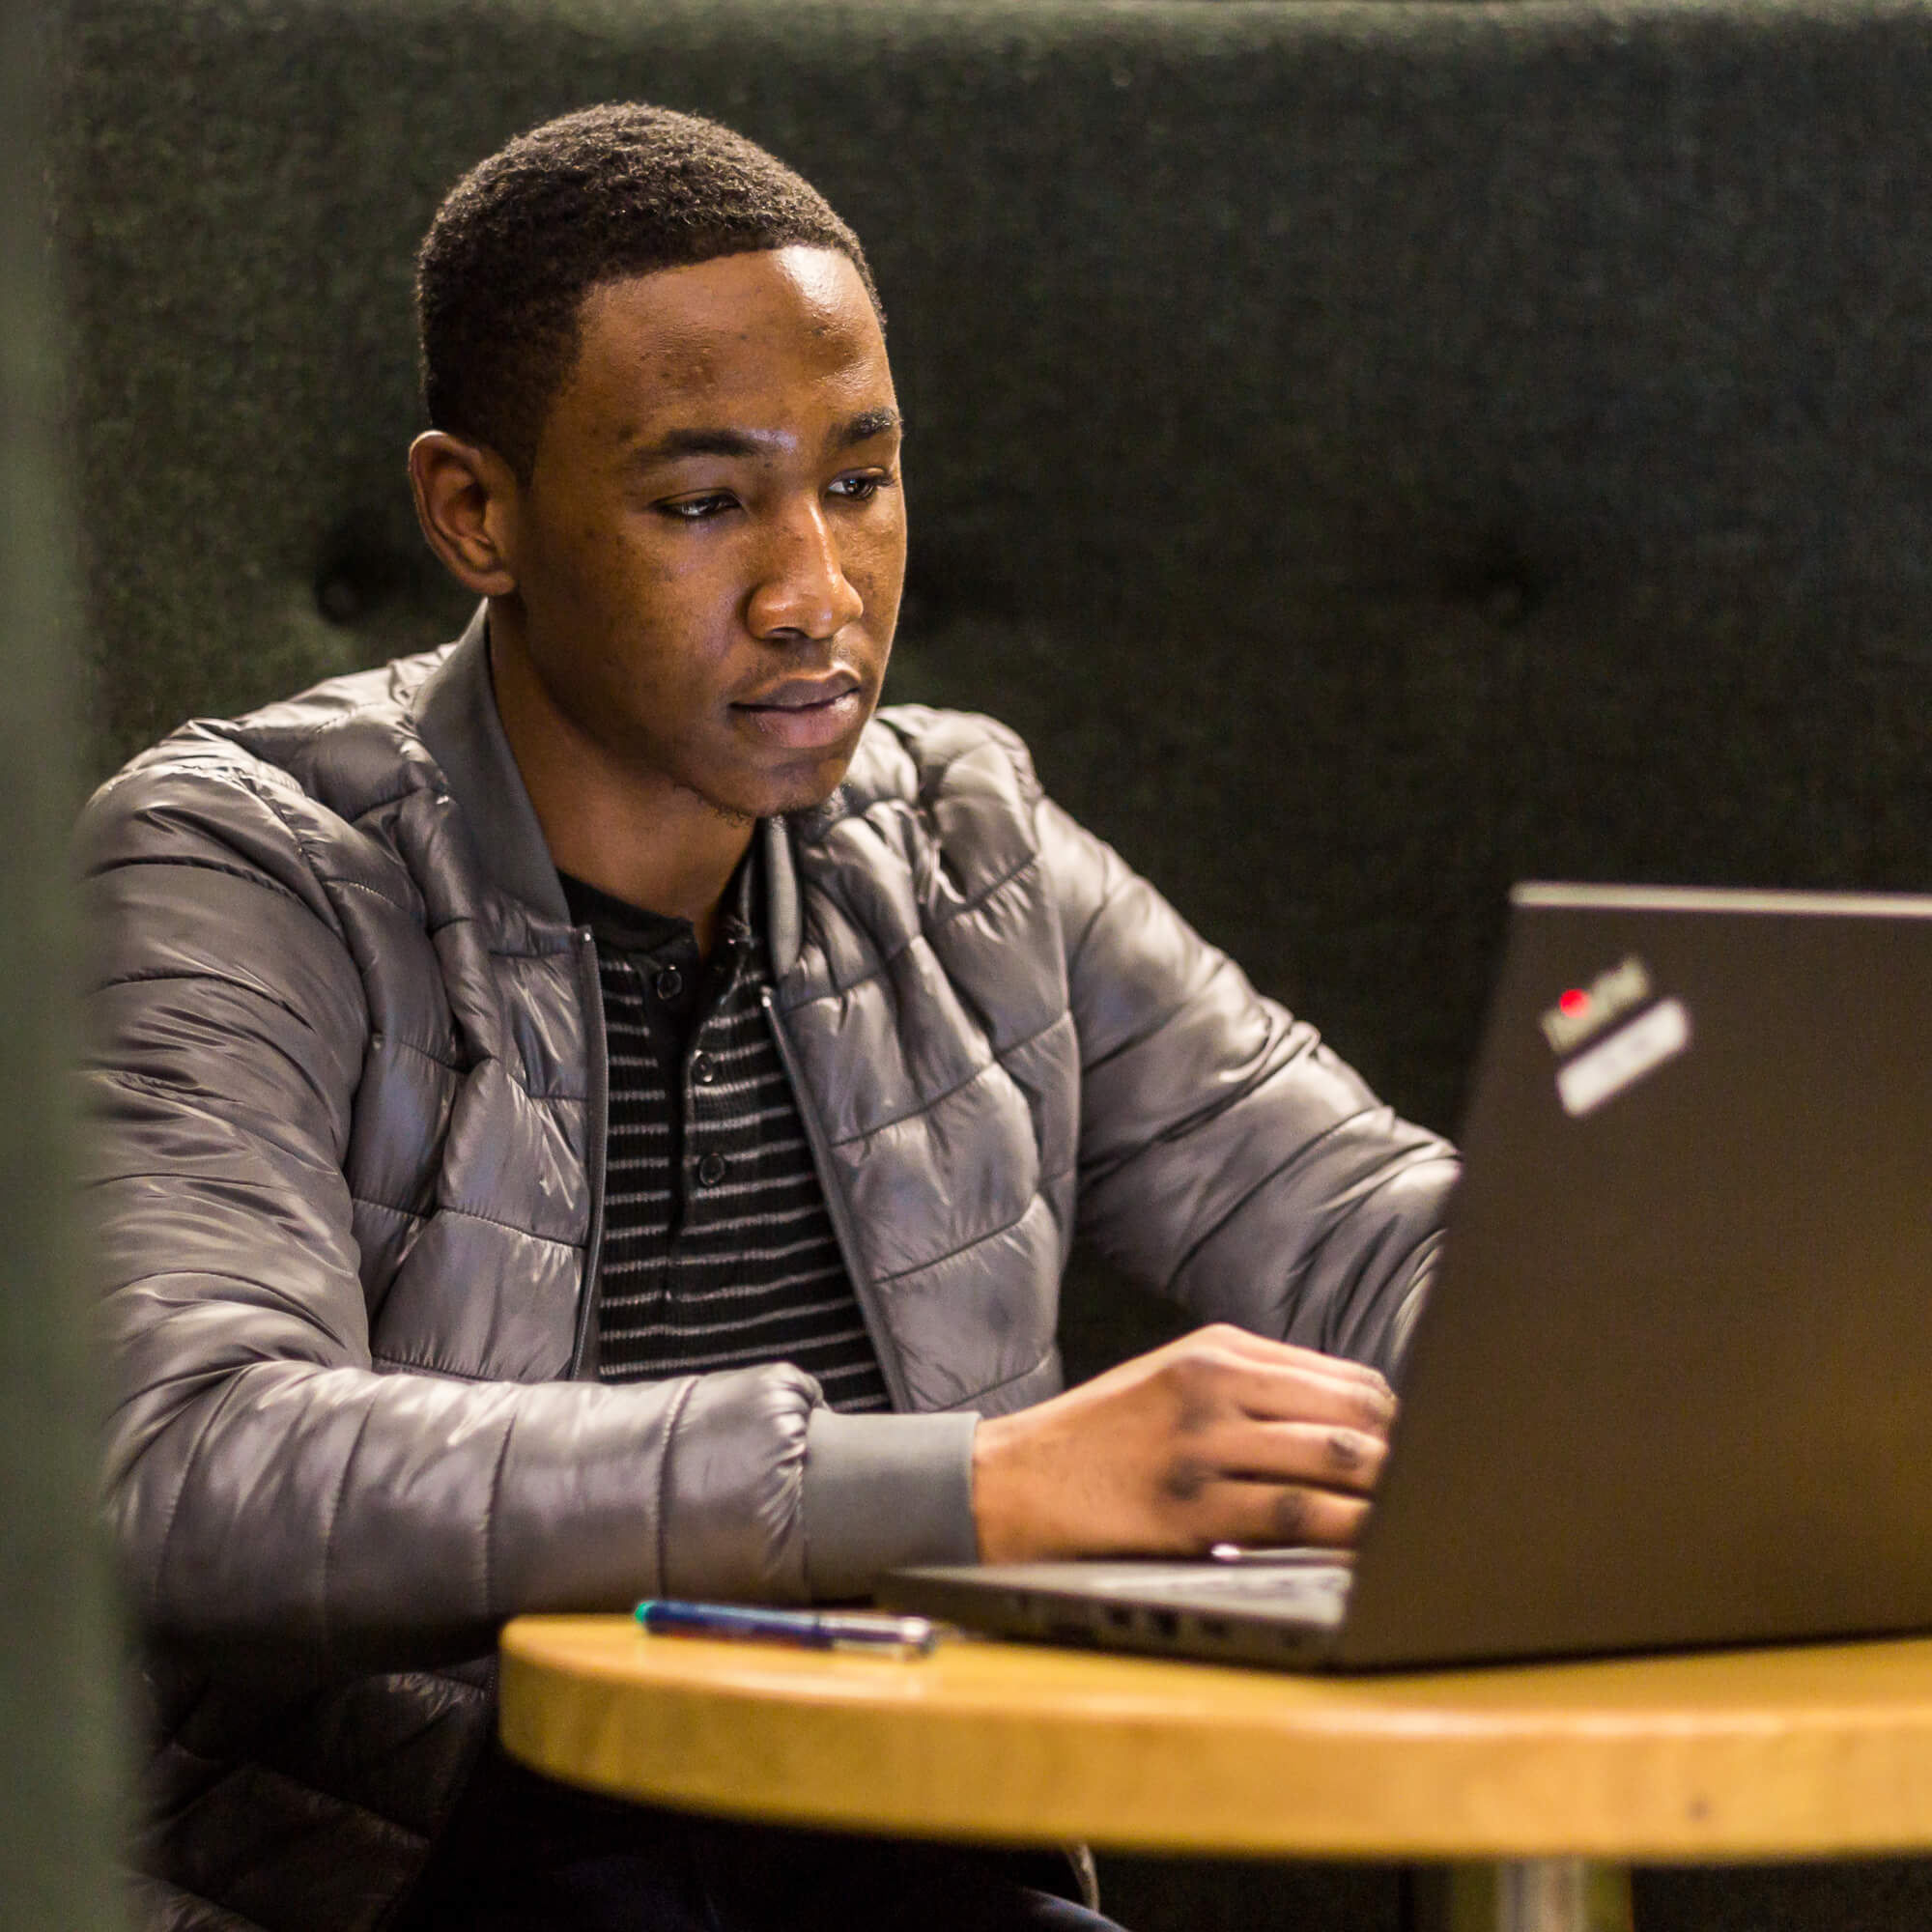 A student sitting at a desk, looking at a laptop